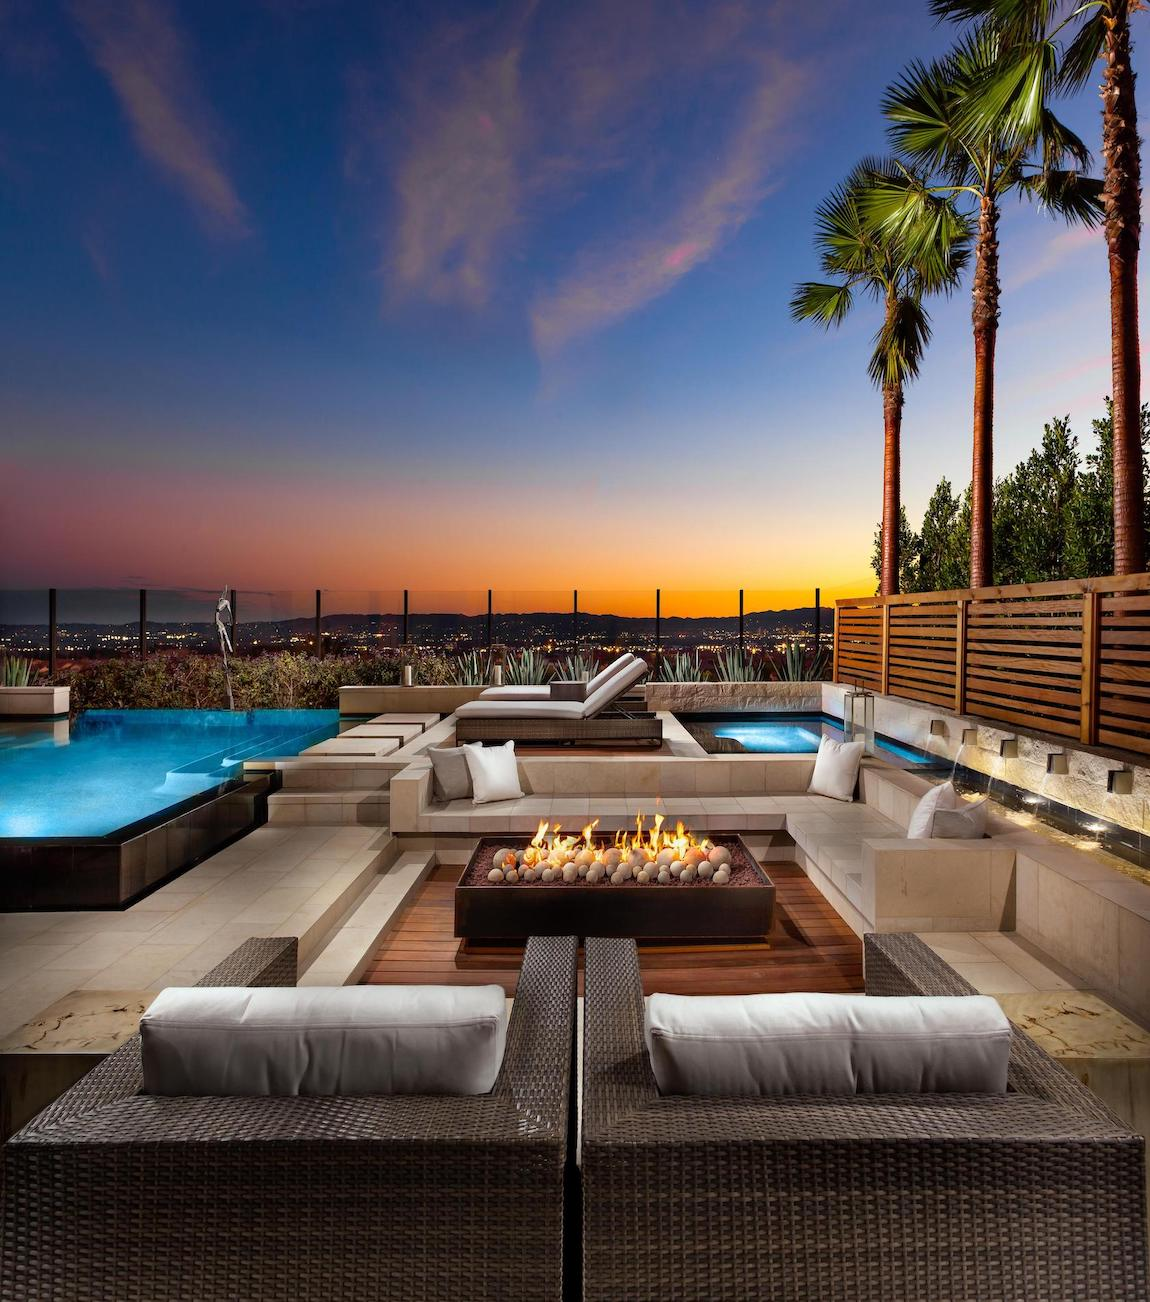 Fire pit patio with amazing view of California sky